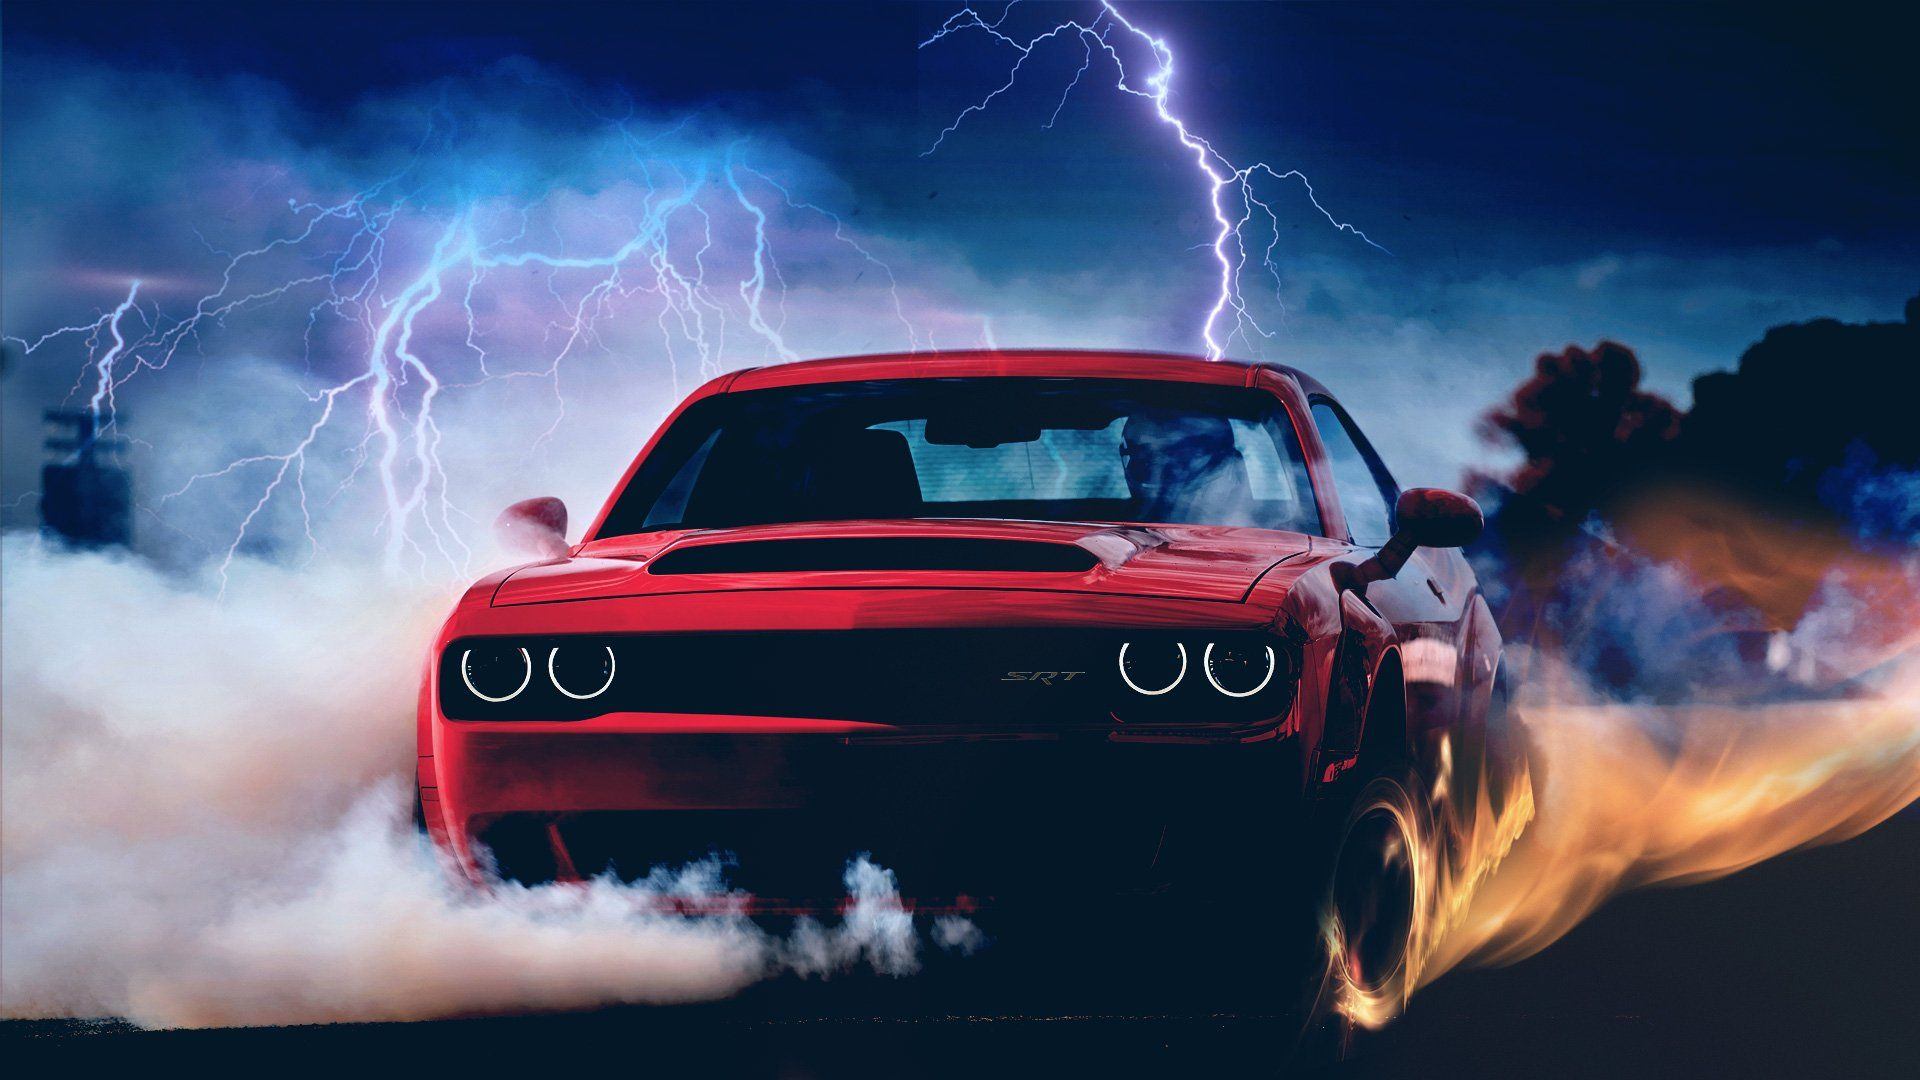 1080p Muscle Car Wallpaper 2018 Dodge Demon Wallpaper 2018 Wallpapers Hd